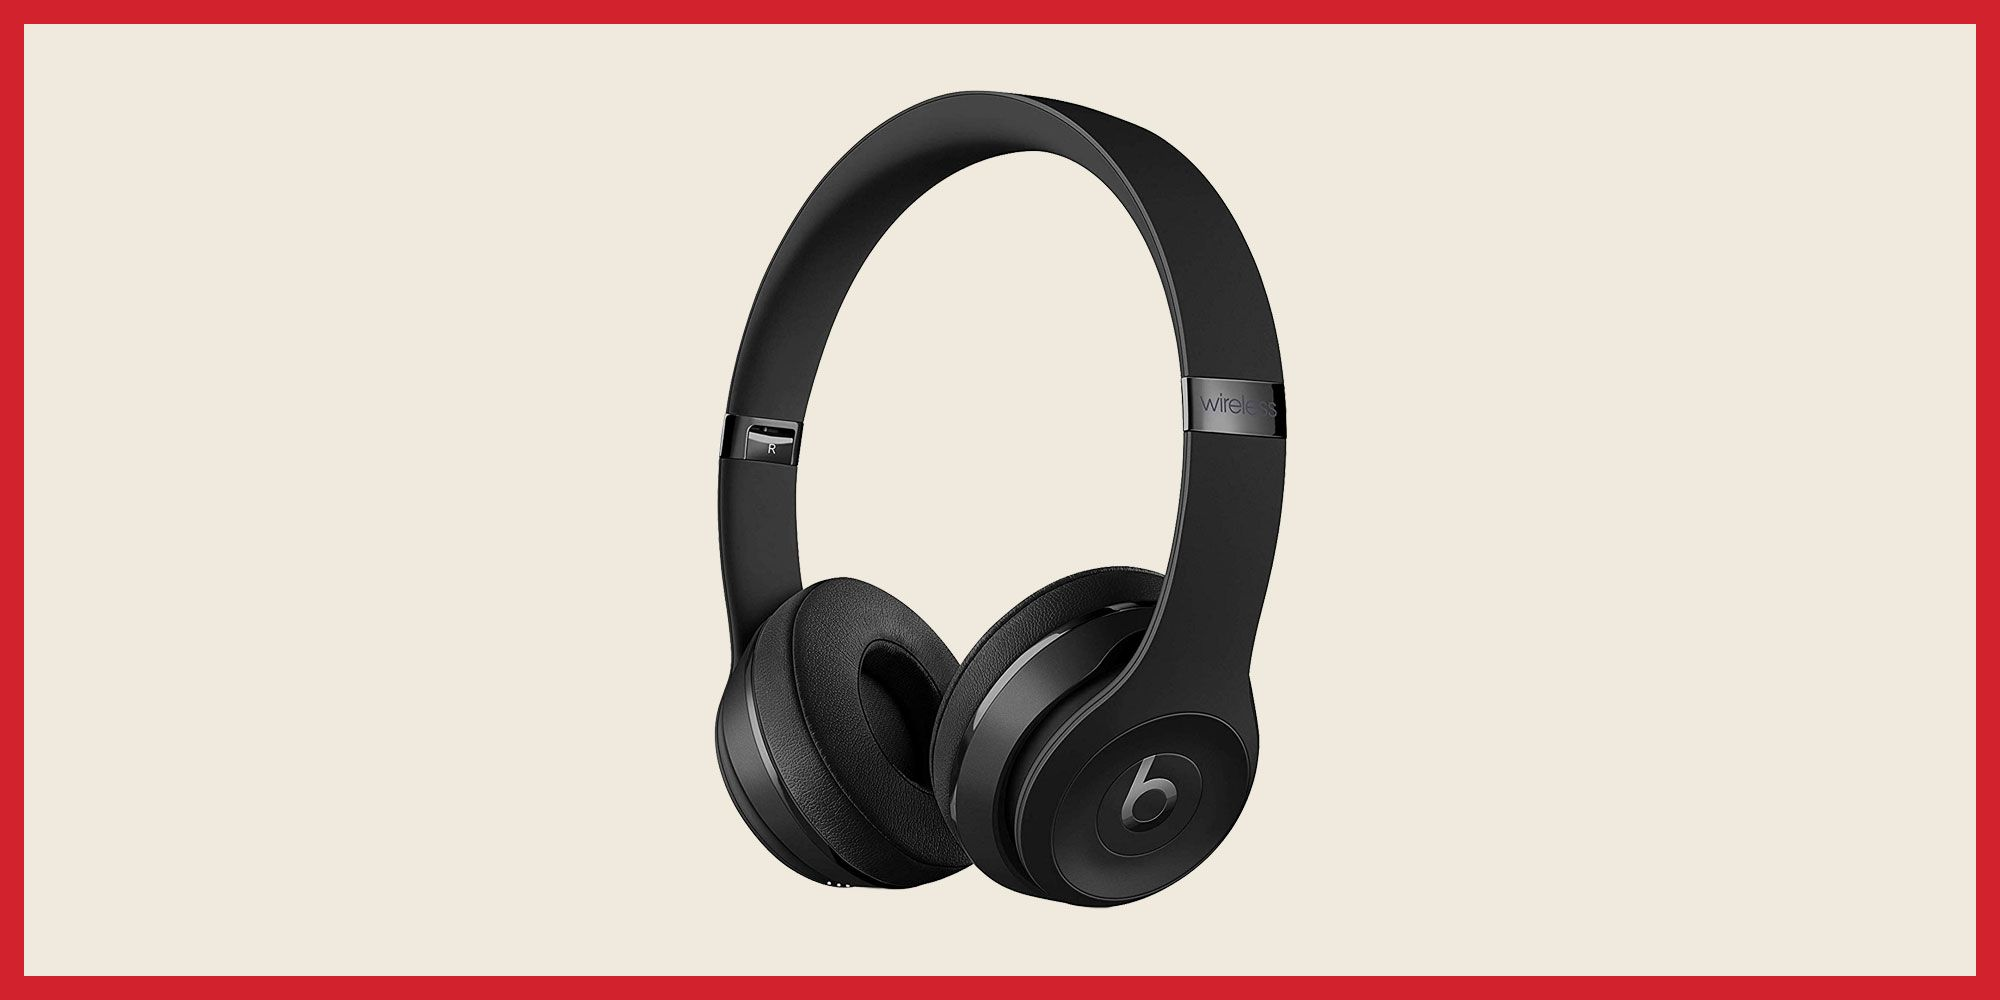 Save Over 50% on the Beats Solo3 Wireless Headphones Today on Amazon